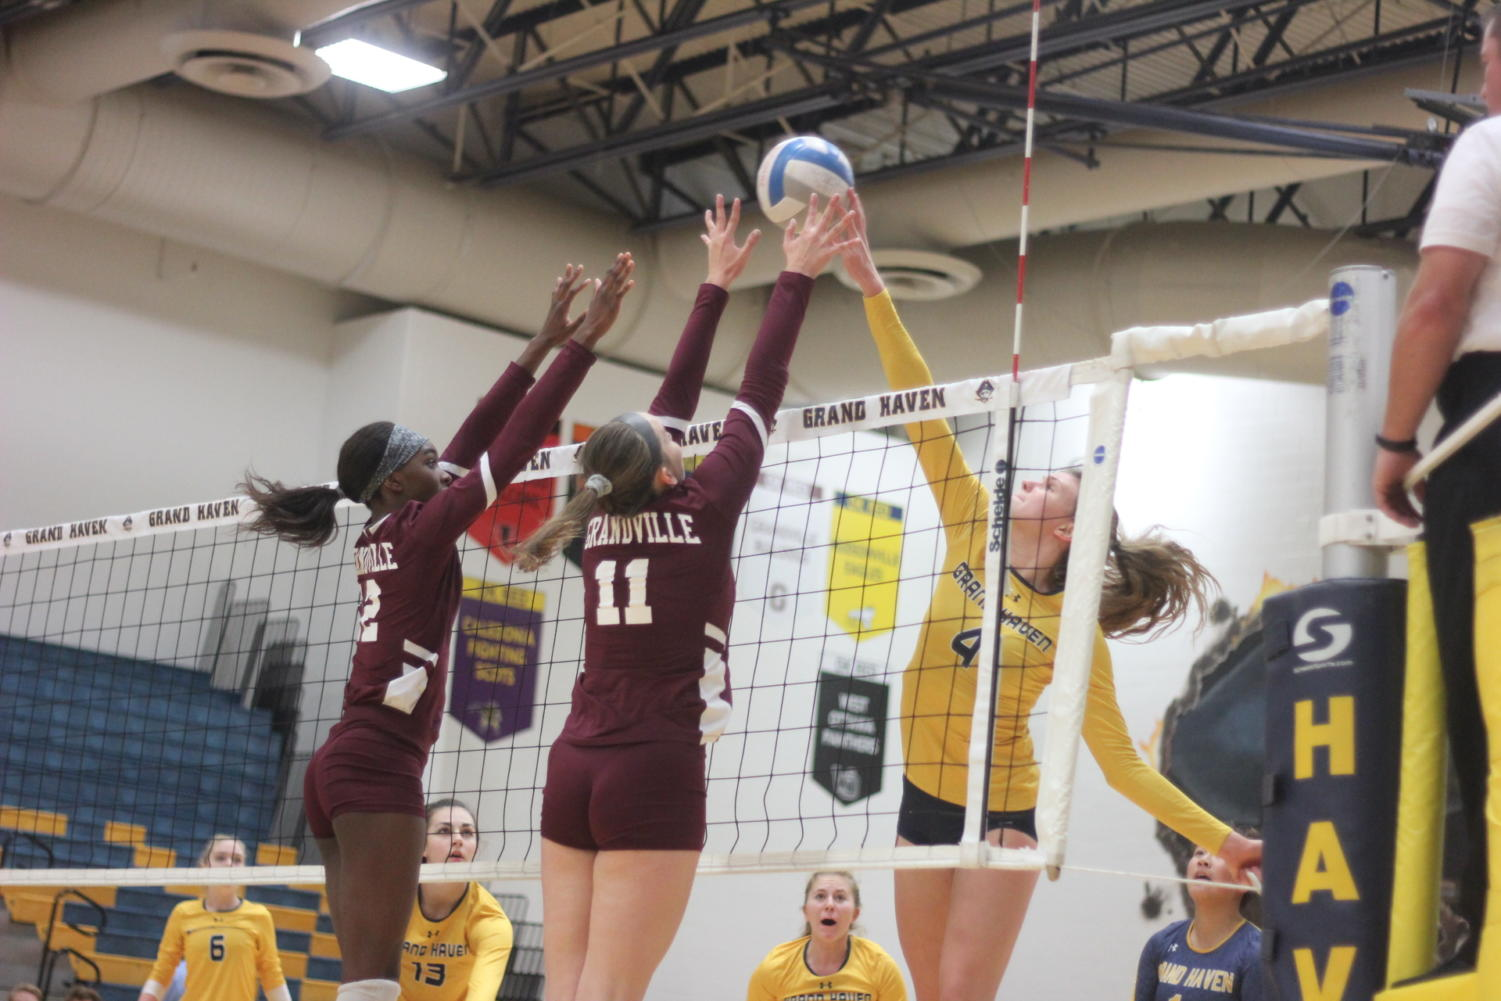 Junior Ashley Slater rises to spike a ball in a home match vs. Grandville. Slater has led the Bucs offensively this season.